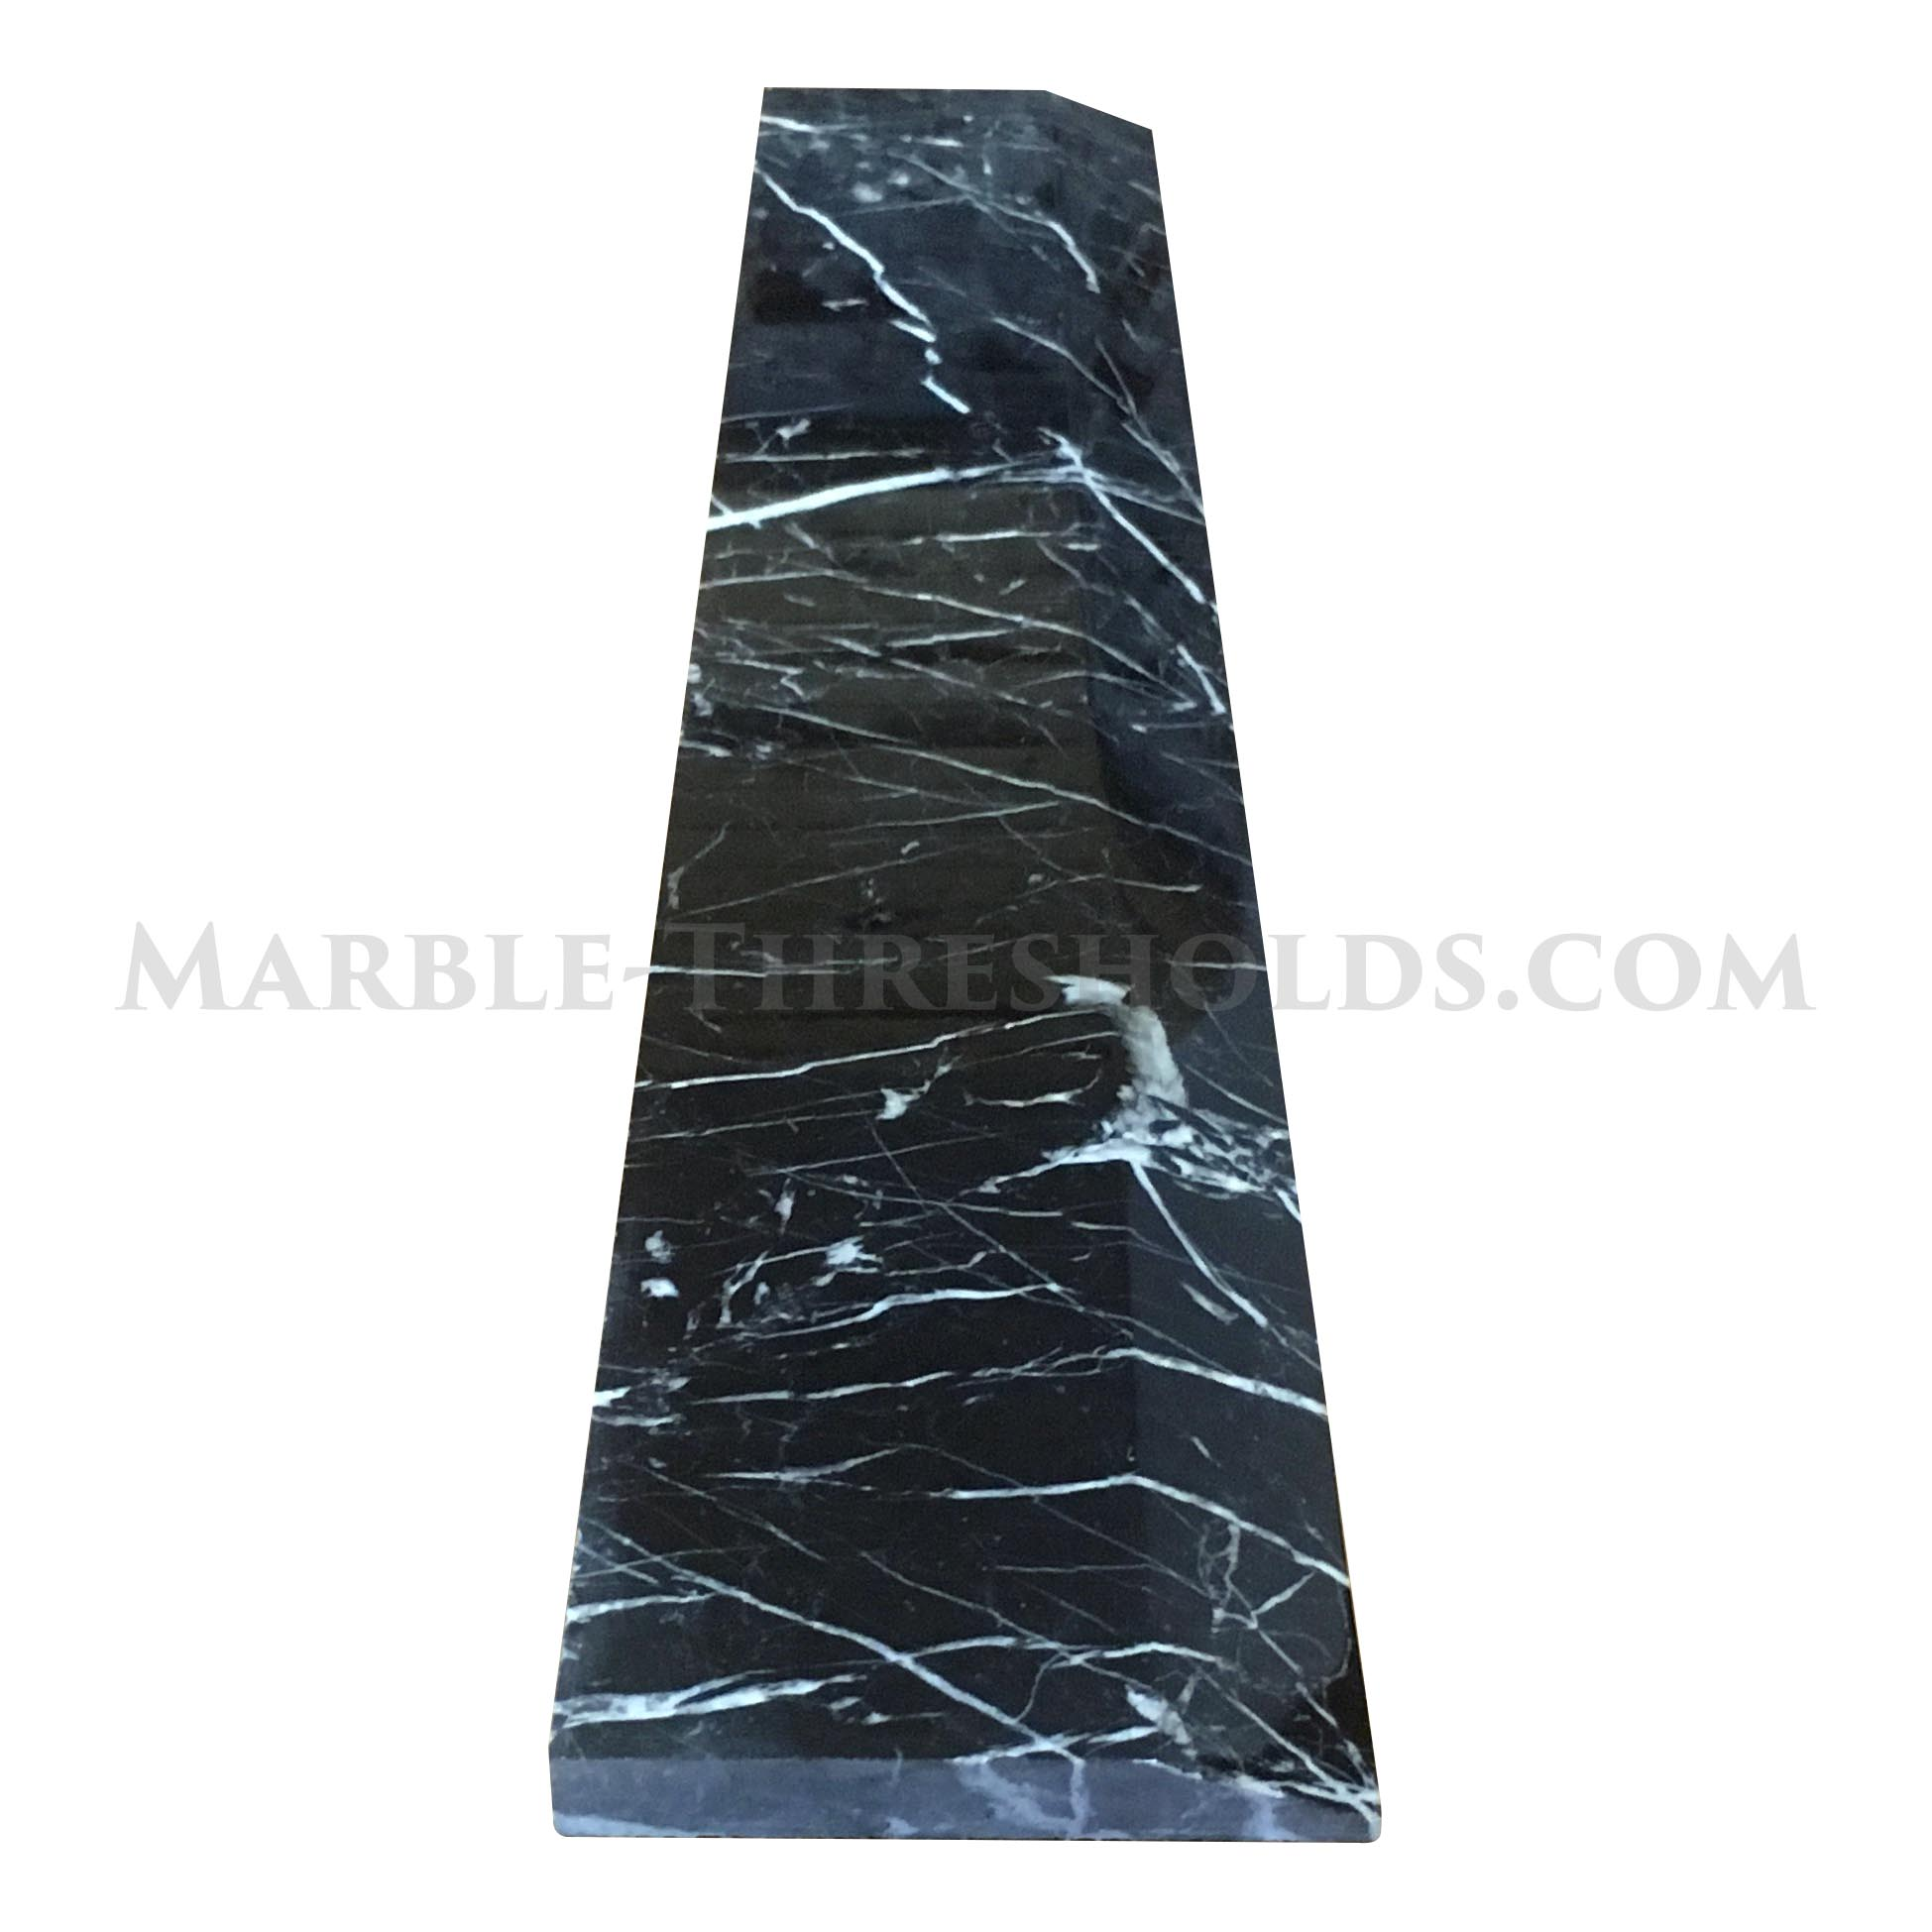 Nero Marquina Marble Door Threshold  sc 1 st  Marble-Thresholds.com : hollywood door - pezcame.com